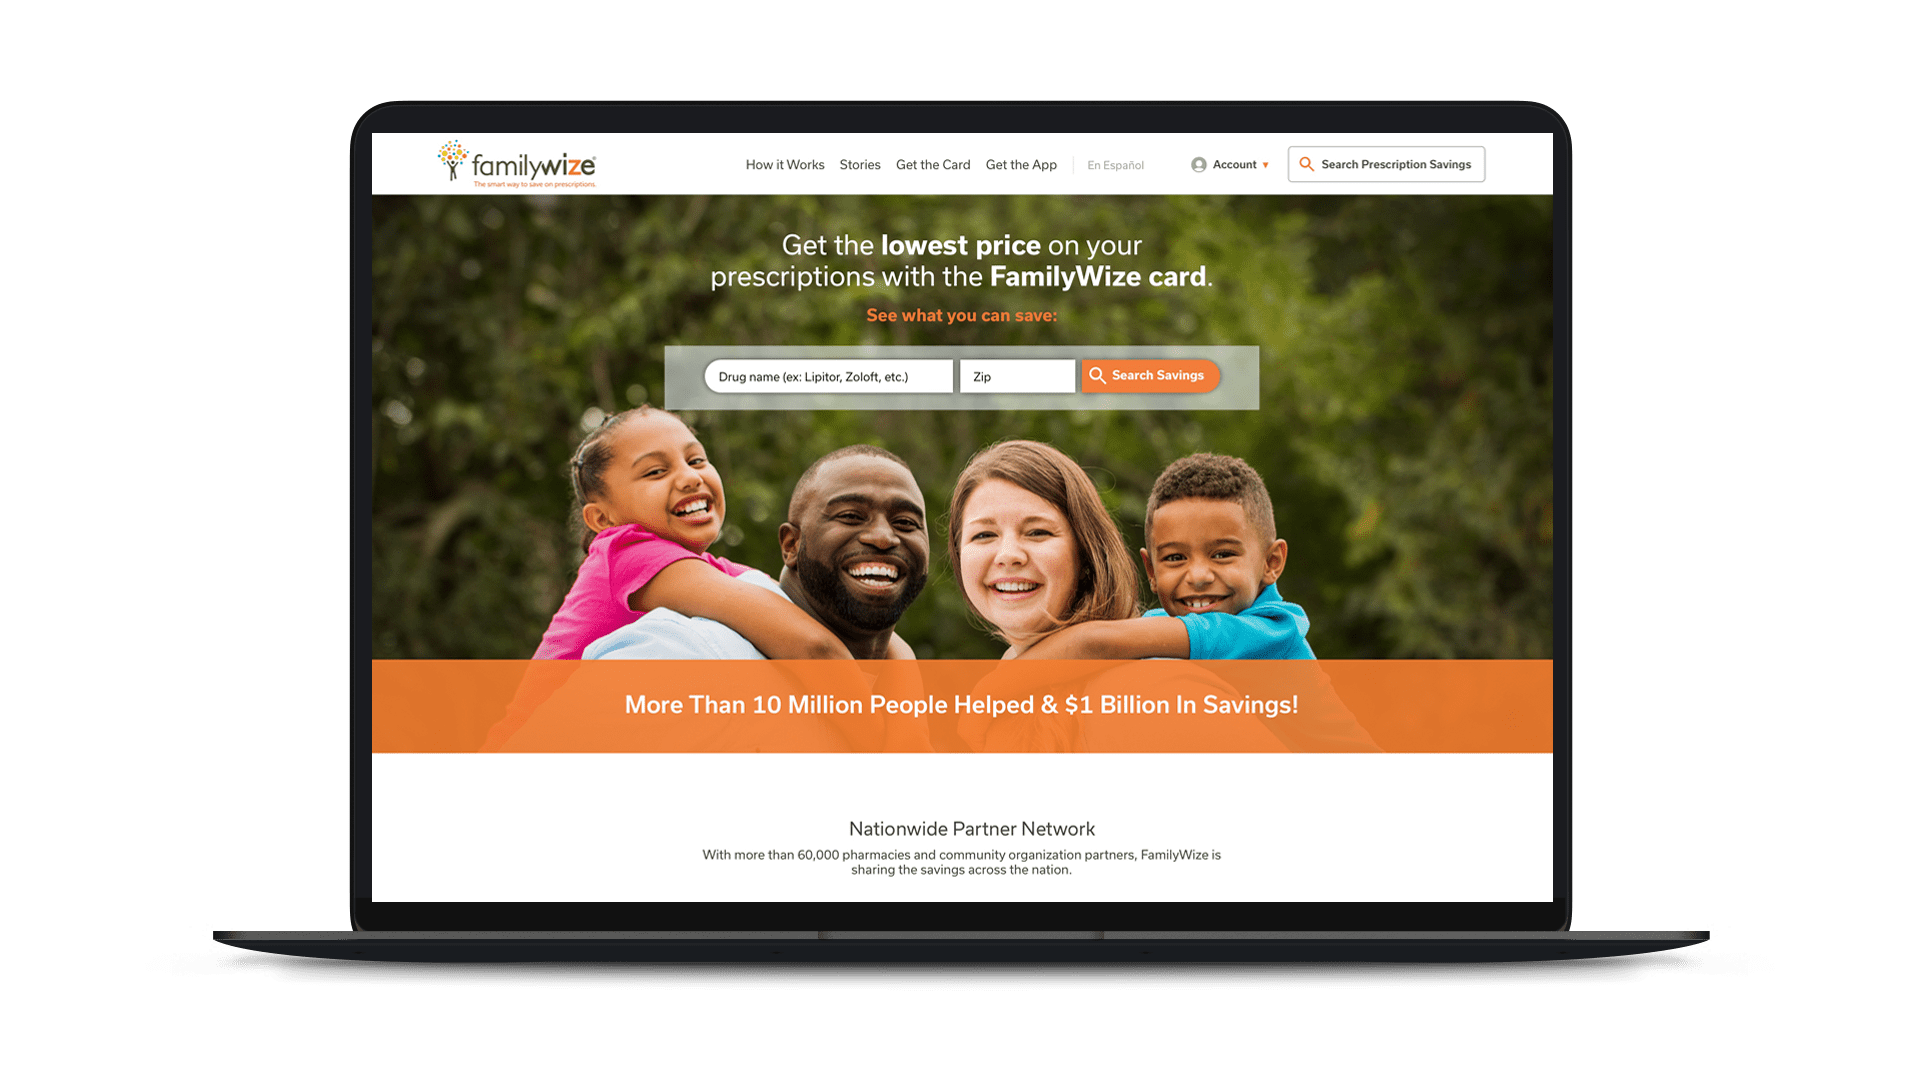 familywize homepage